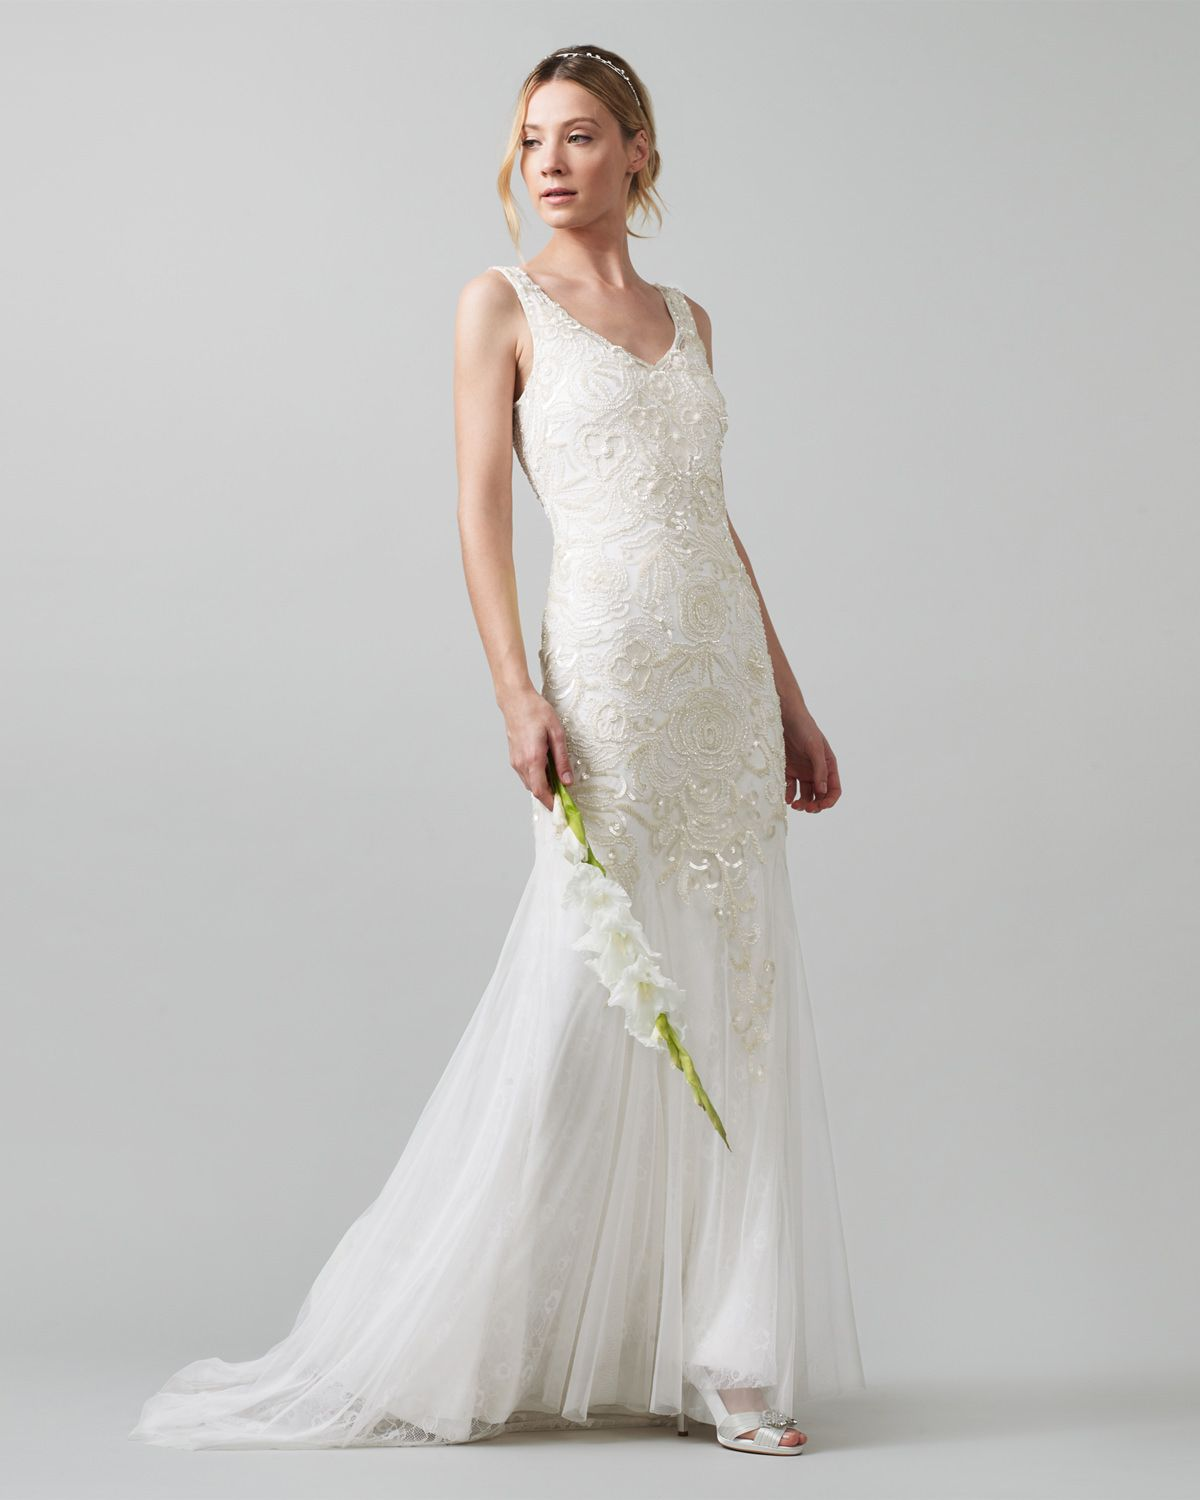 A beautiful choice for your big day this stunning wedding dress the maeve wedding dress from monsoon features a contemporary ombr effect to the sequins and an ultra flattering v back detail ombrellifo Choice Image